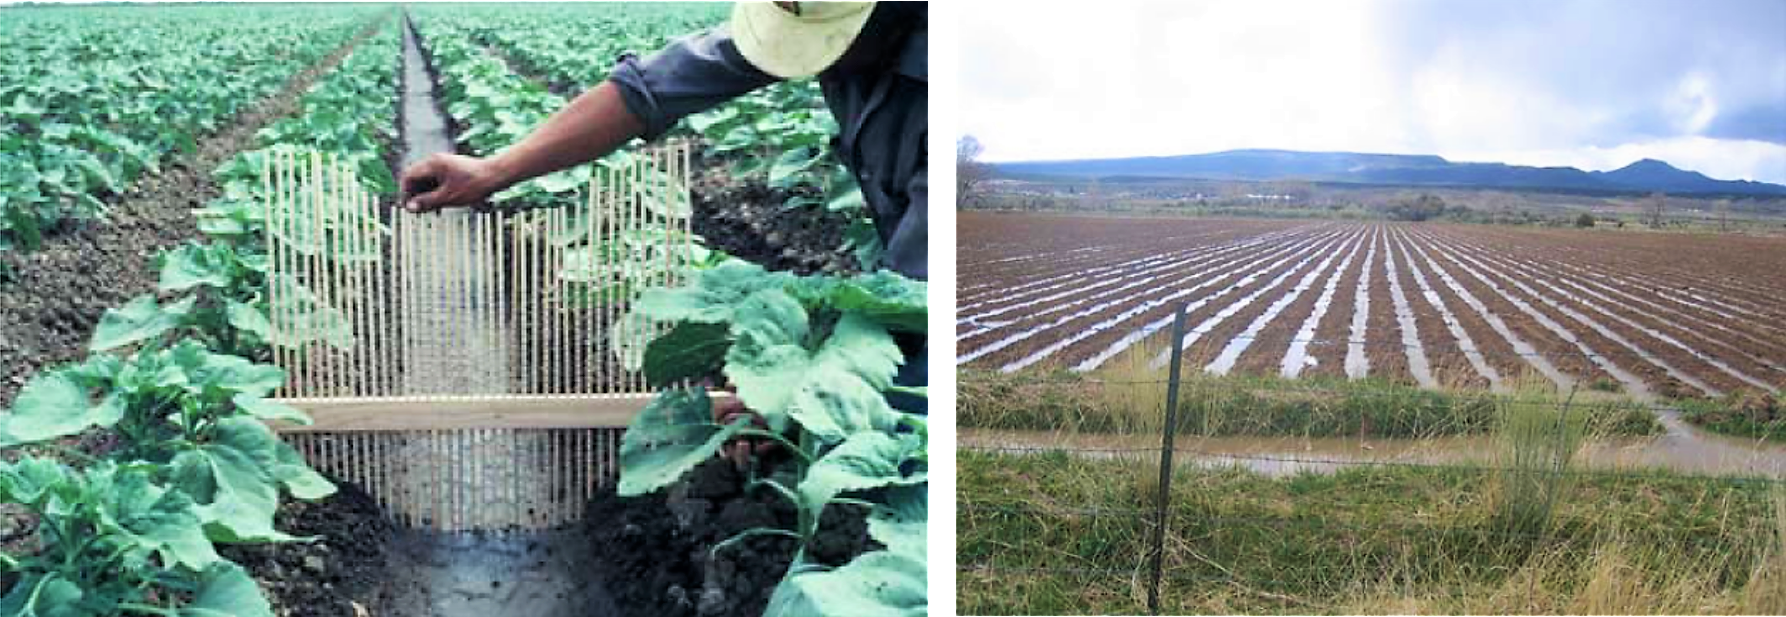 Left: Measuring of a single furrow shape. Right: A field irrigated by furrows. Source: WALKER (2003) and HILL et al. (2008)